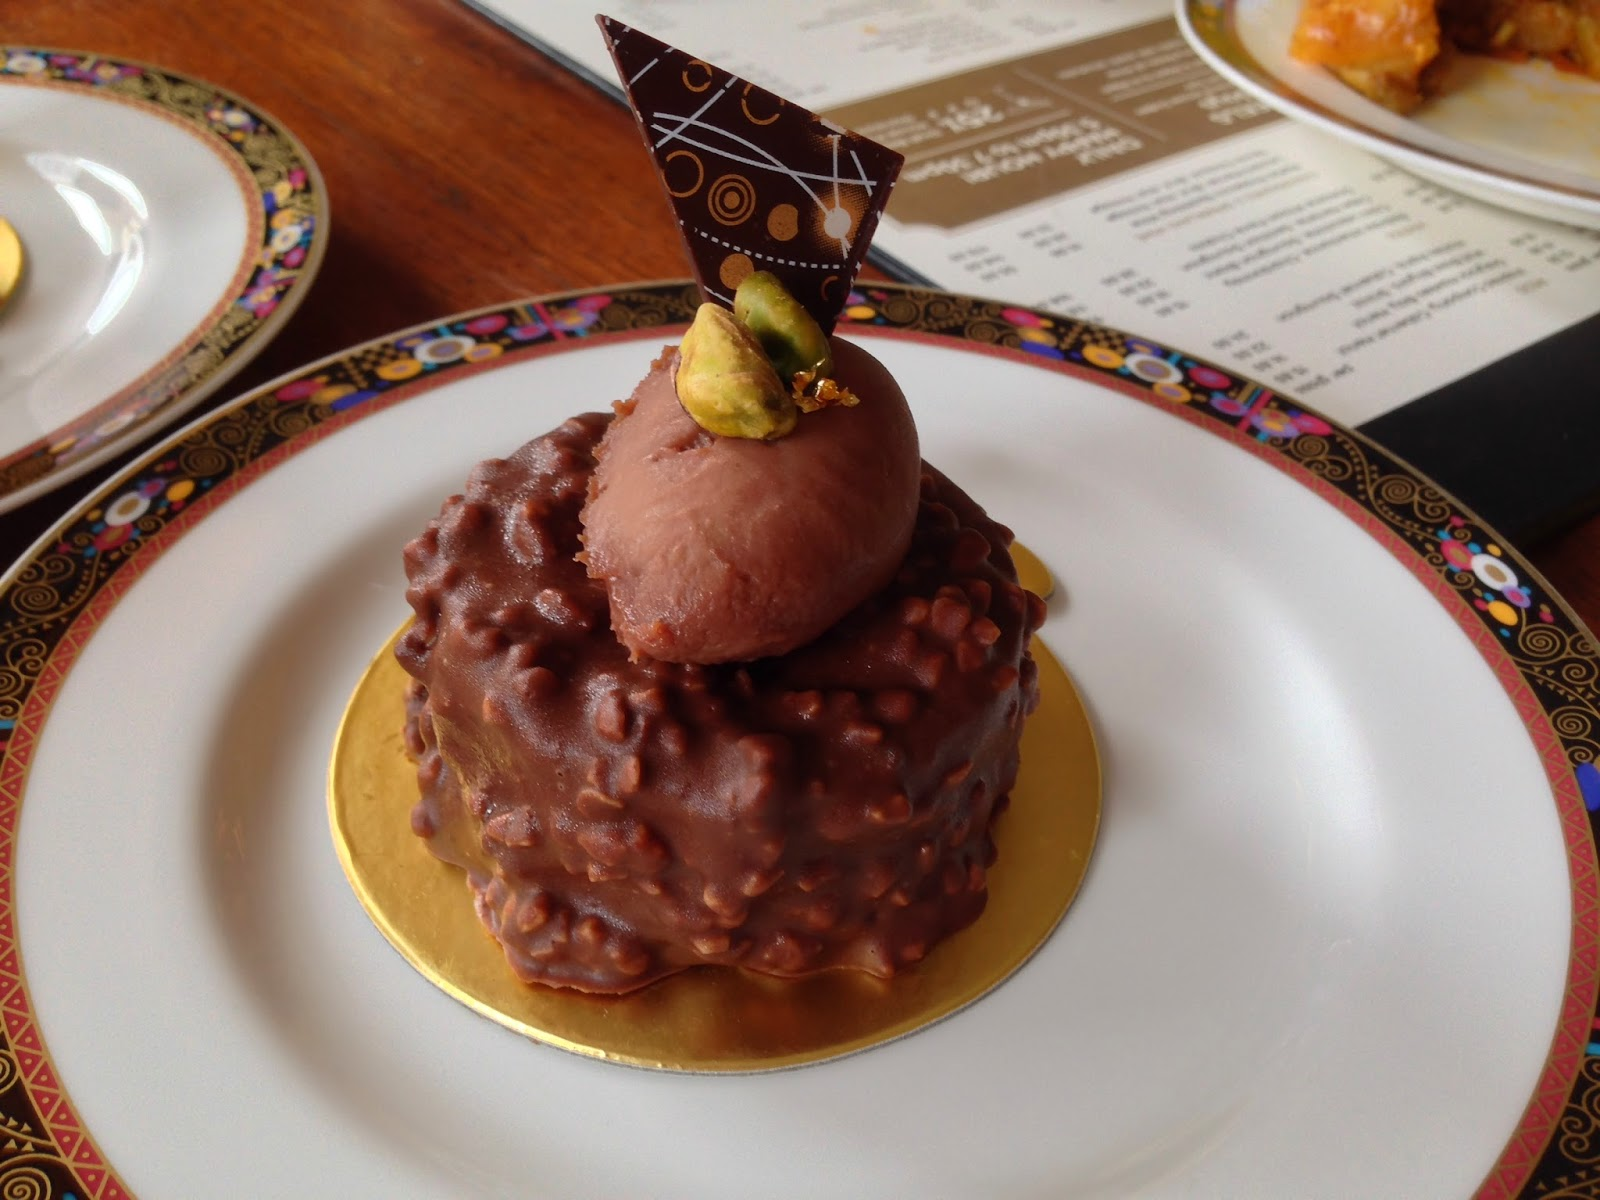 Glazed Macadamia Chocolate Fondant